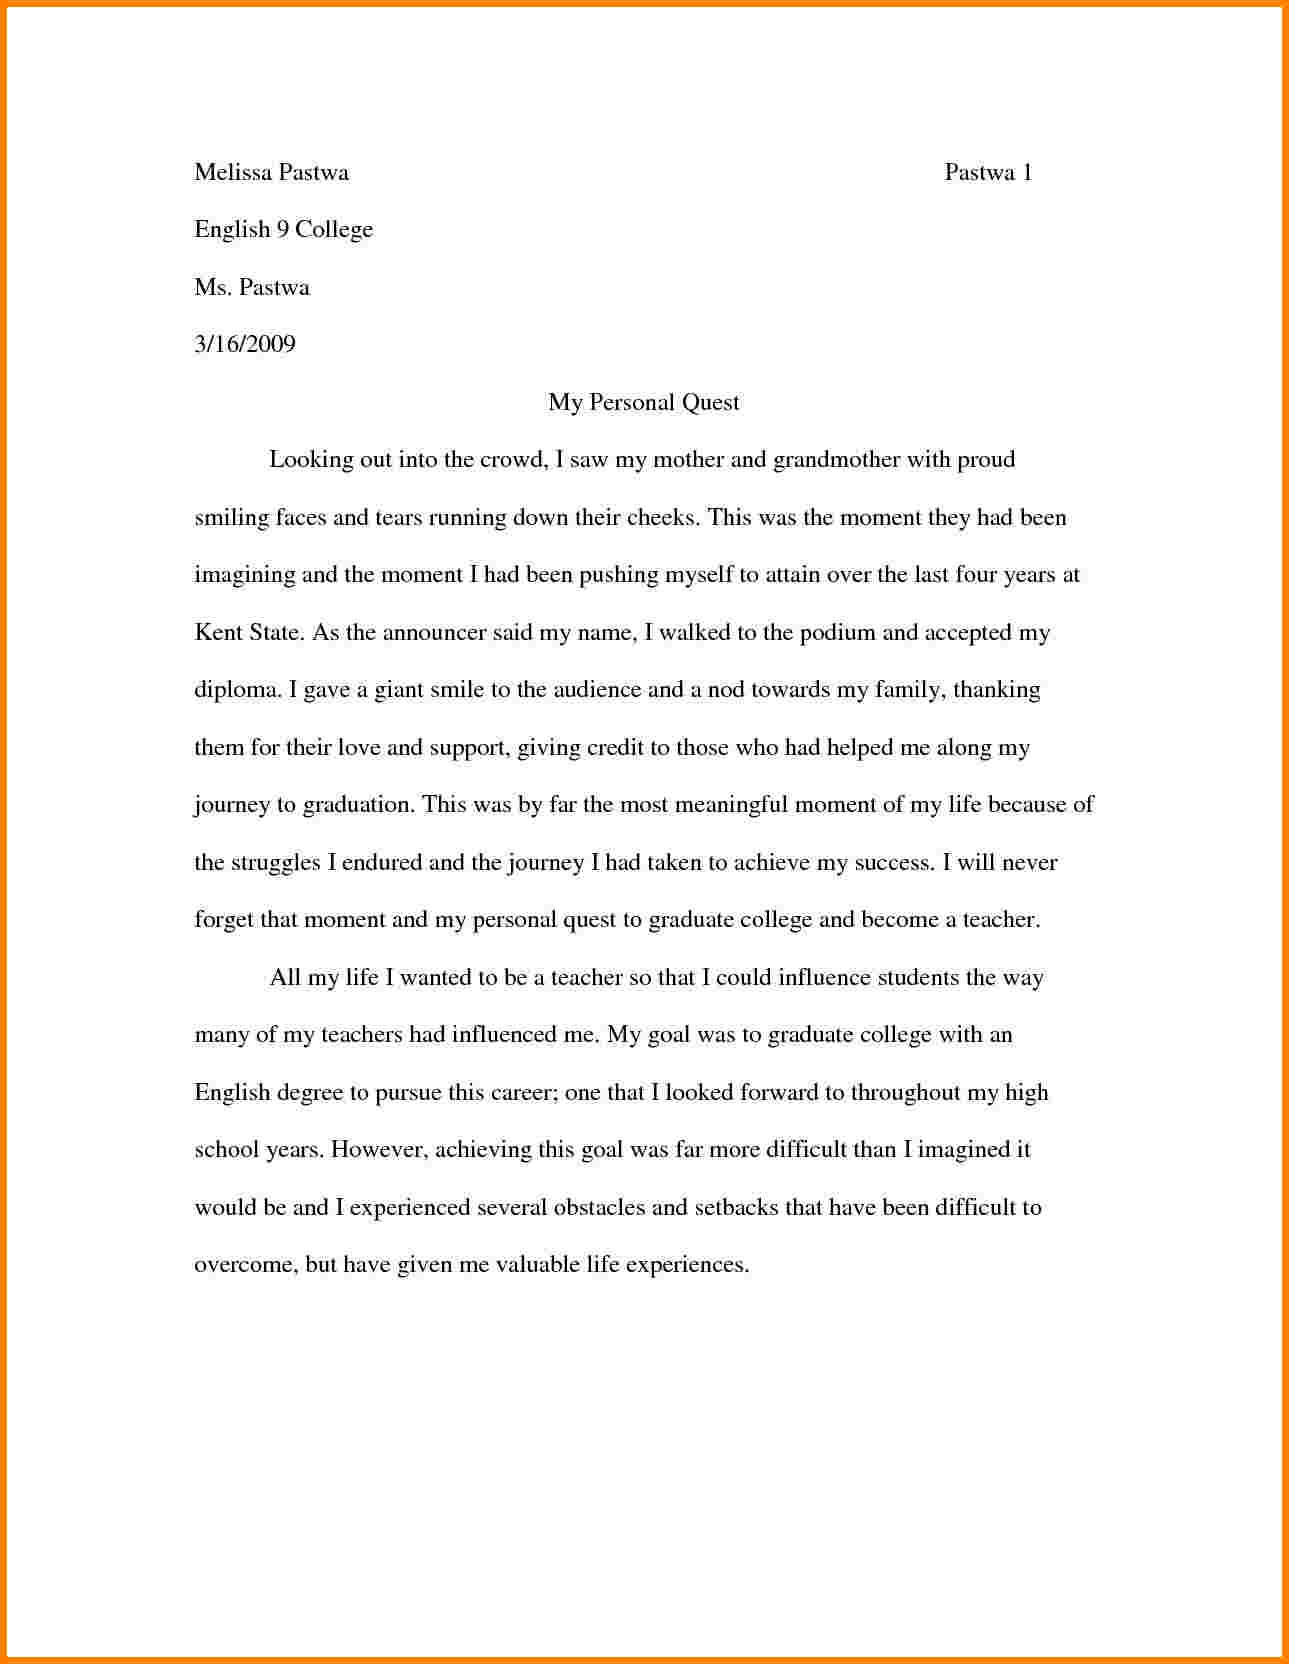 014 3341381556 How To Write Proposal Argument Essay What Is Excellent A Full